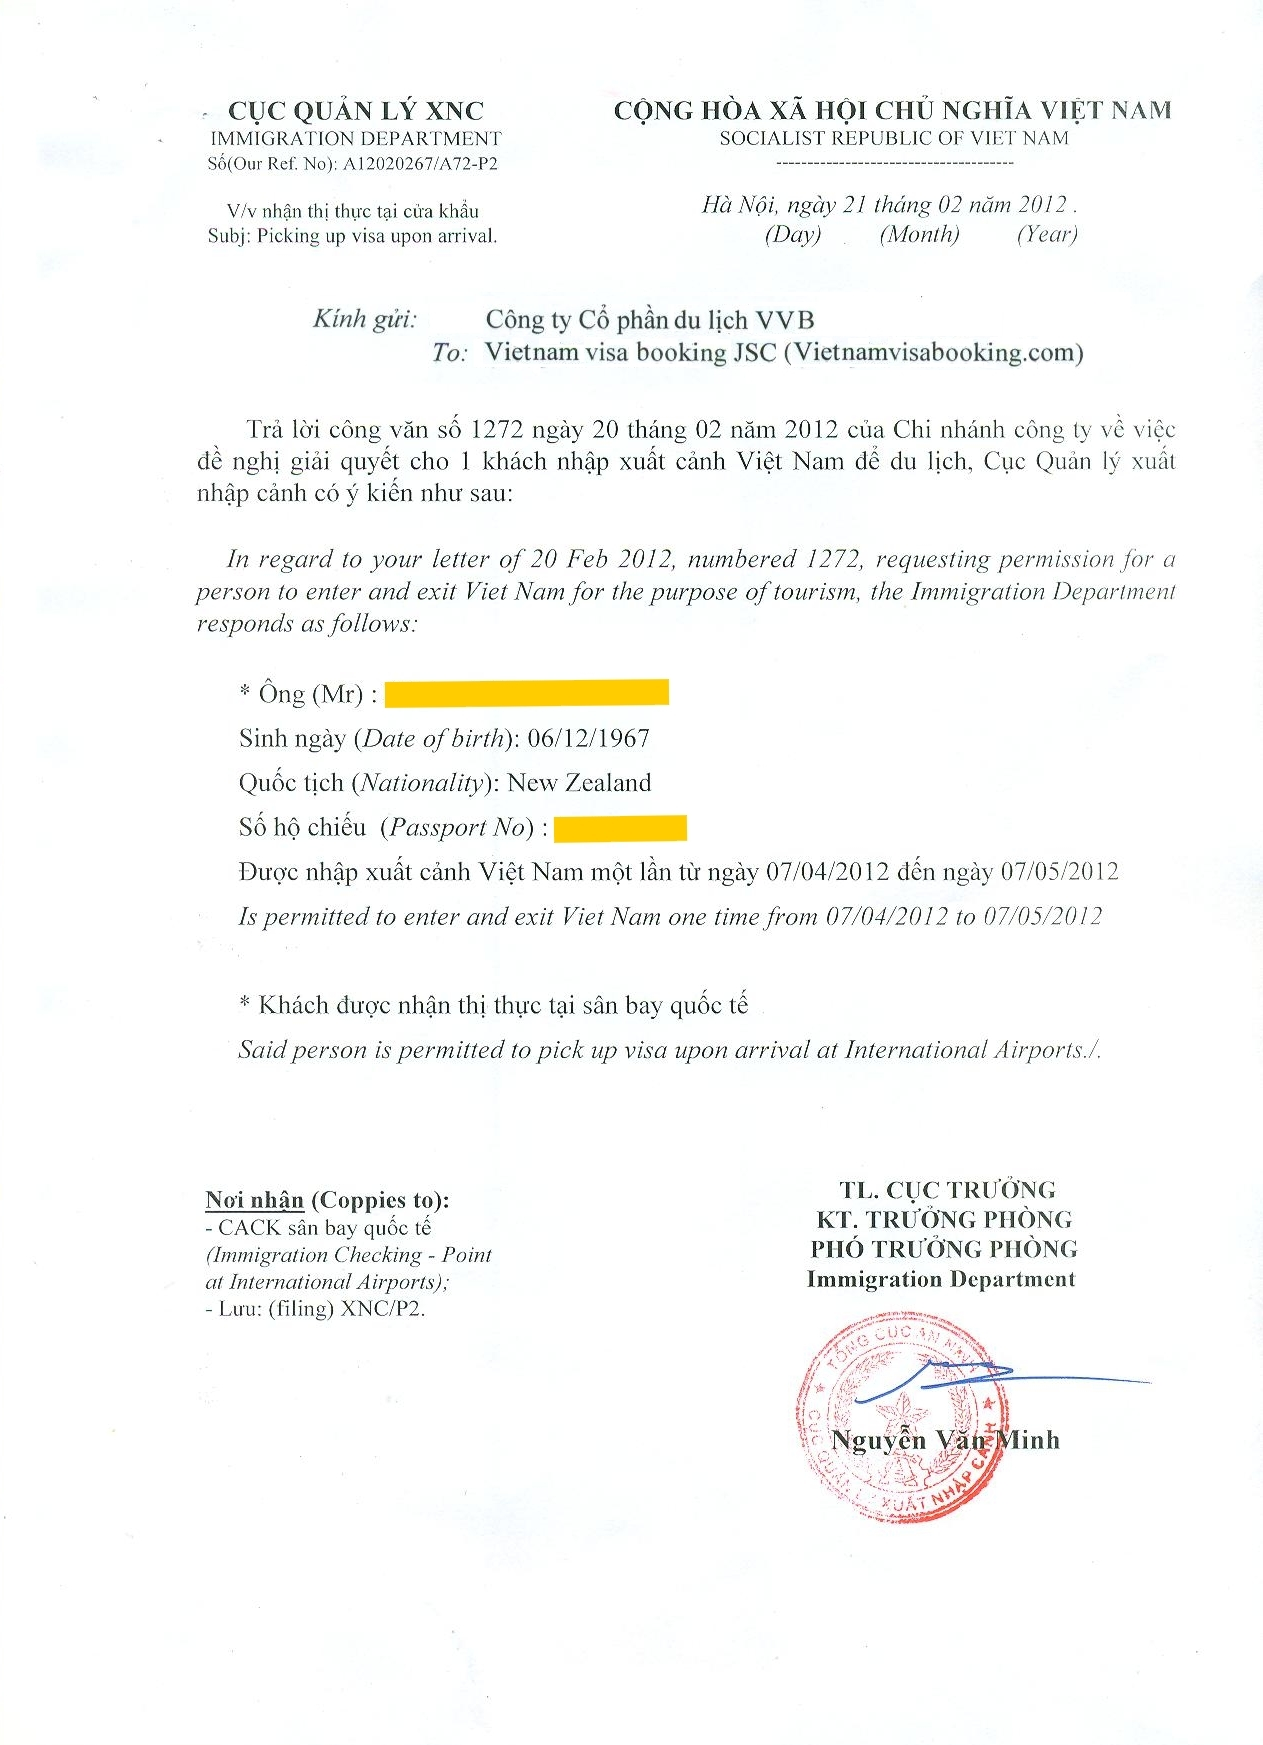 How Does Visa Approval Letter Look Like  RapidvietnamvisaCom